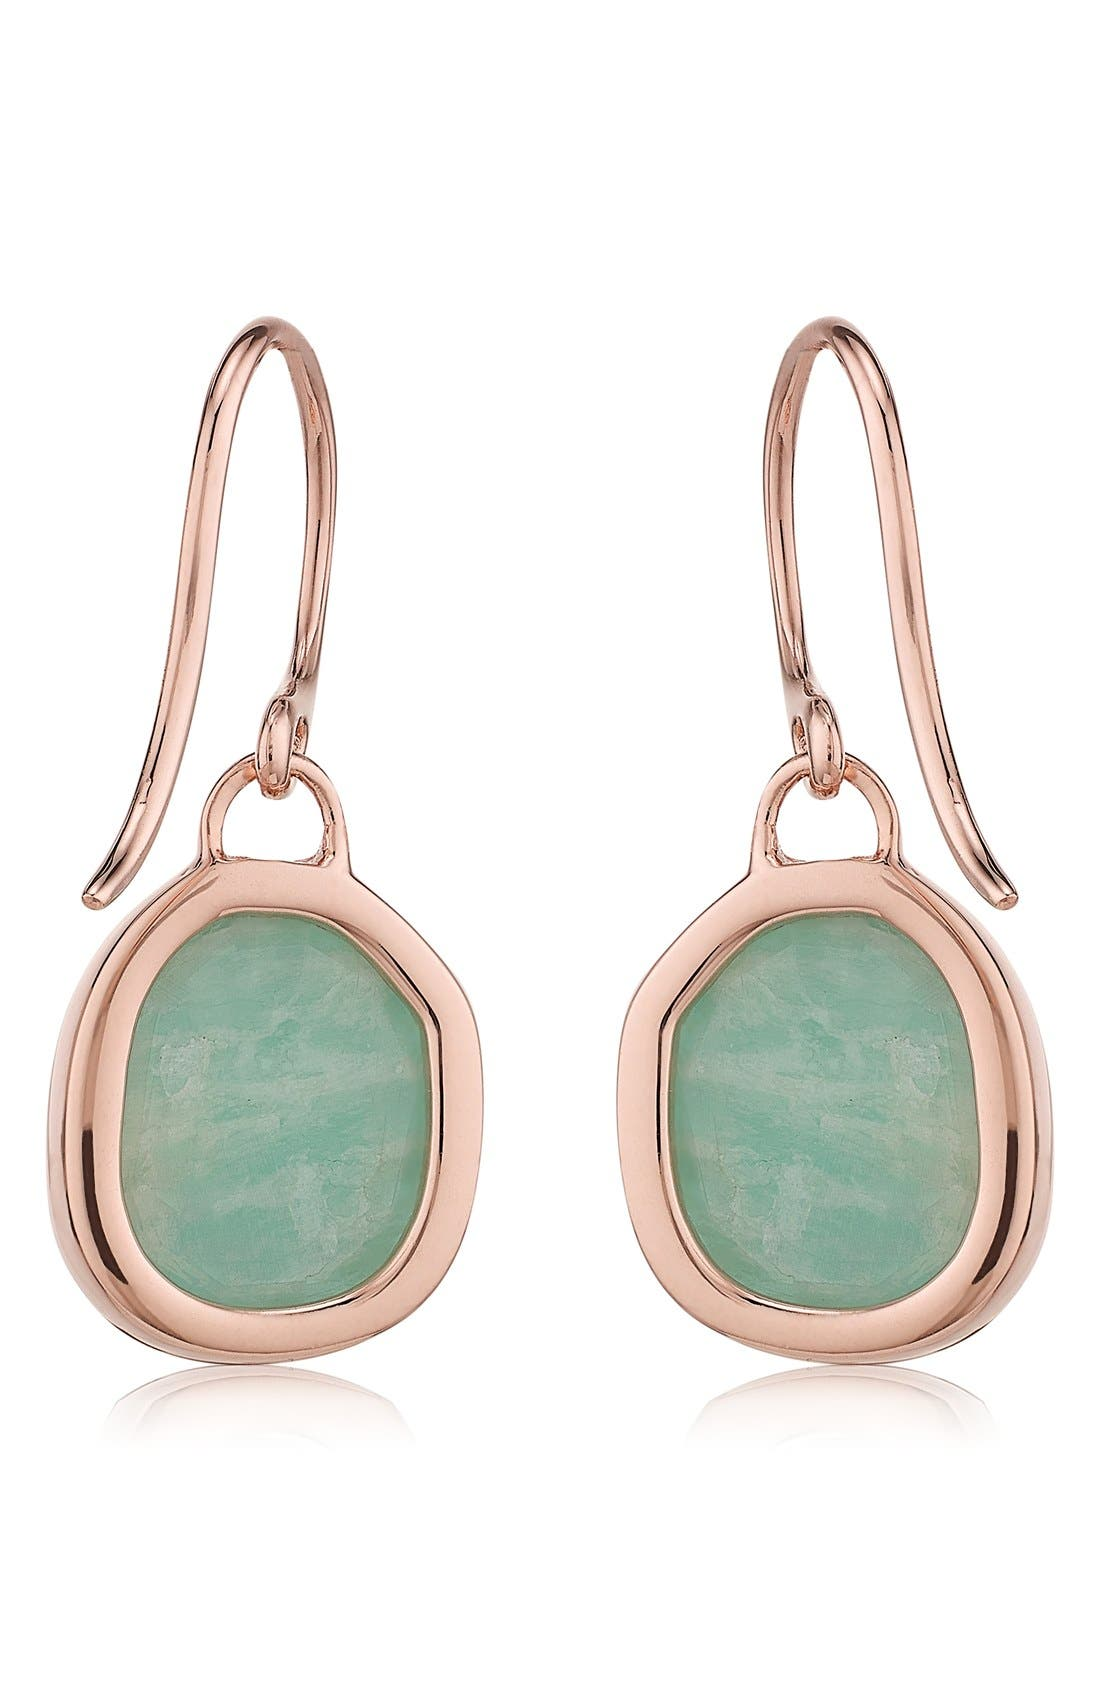 Siren Semiprecious Stone Drop Earrings,                             Alternate thumbnail 5, color,                             AMAZONITE/ ROSE GOLD